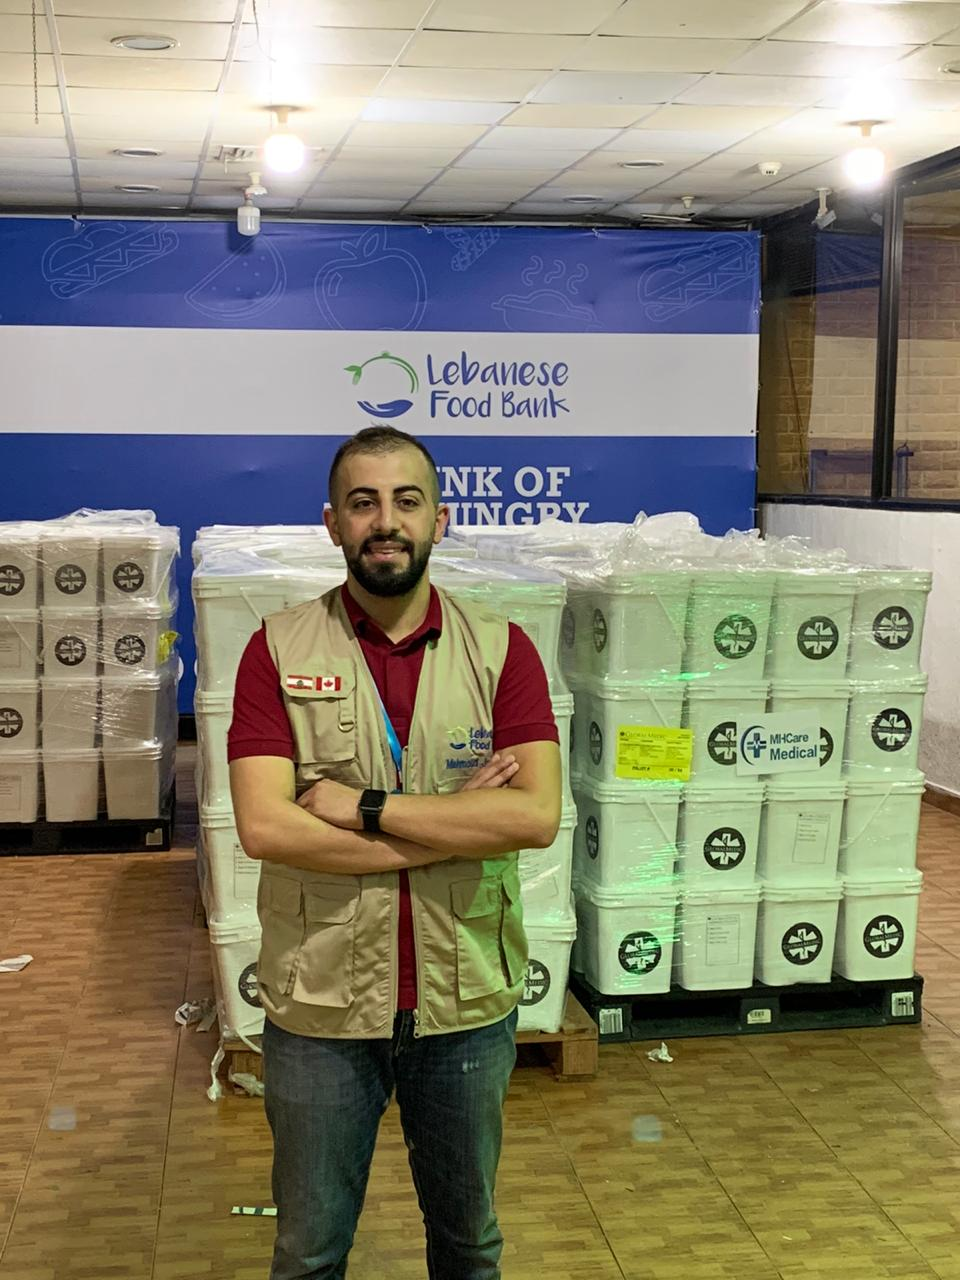 The Lebanese Food Bank has received 10 skids of foodstuffs